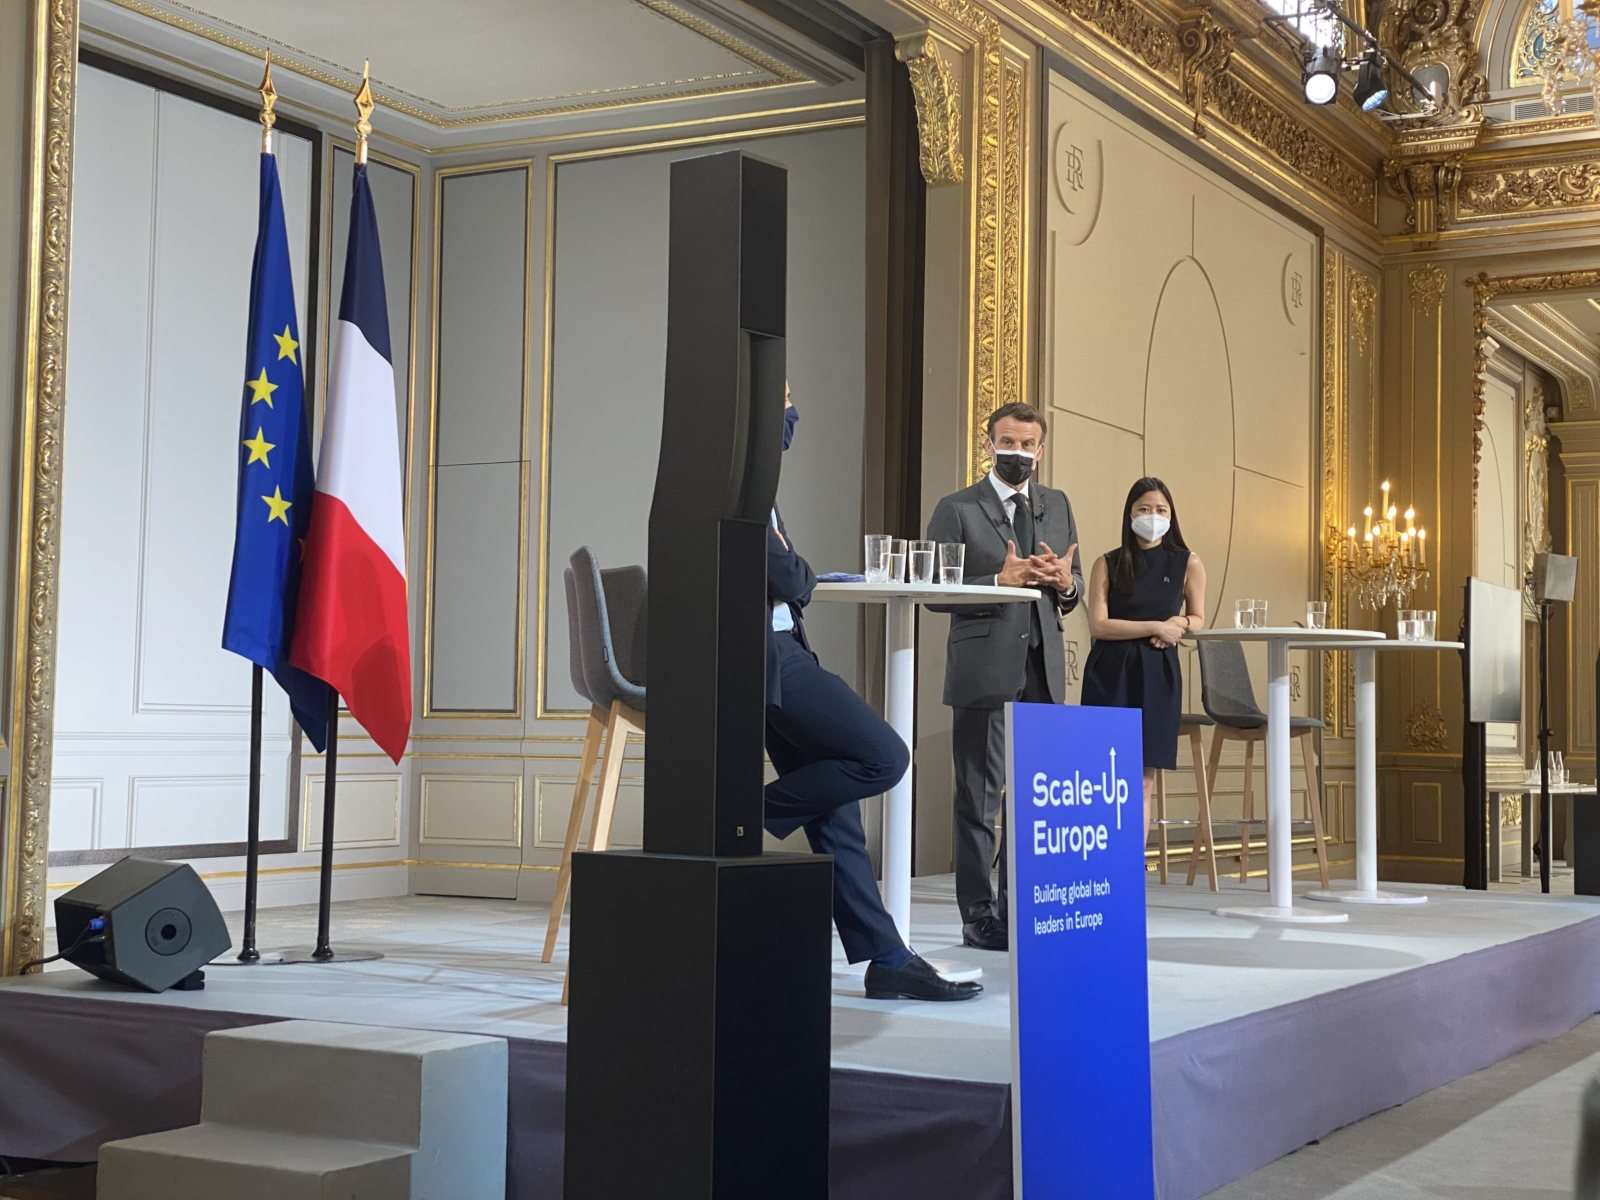 DIGITAL SME joins President Macron in Paris to launch Scale-Up Europe 🚀